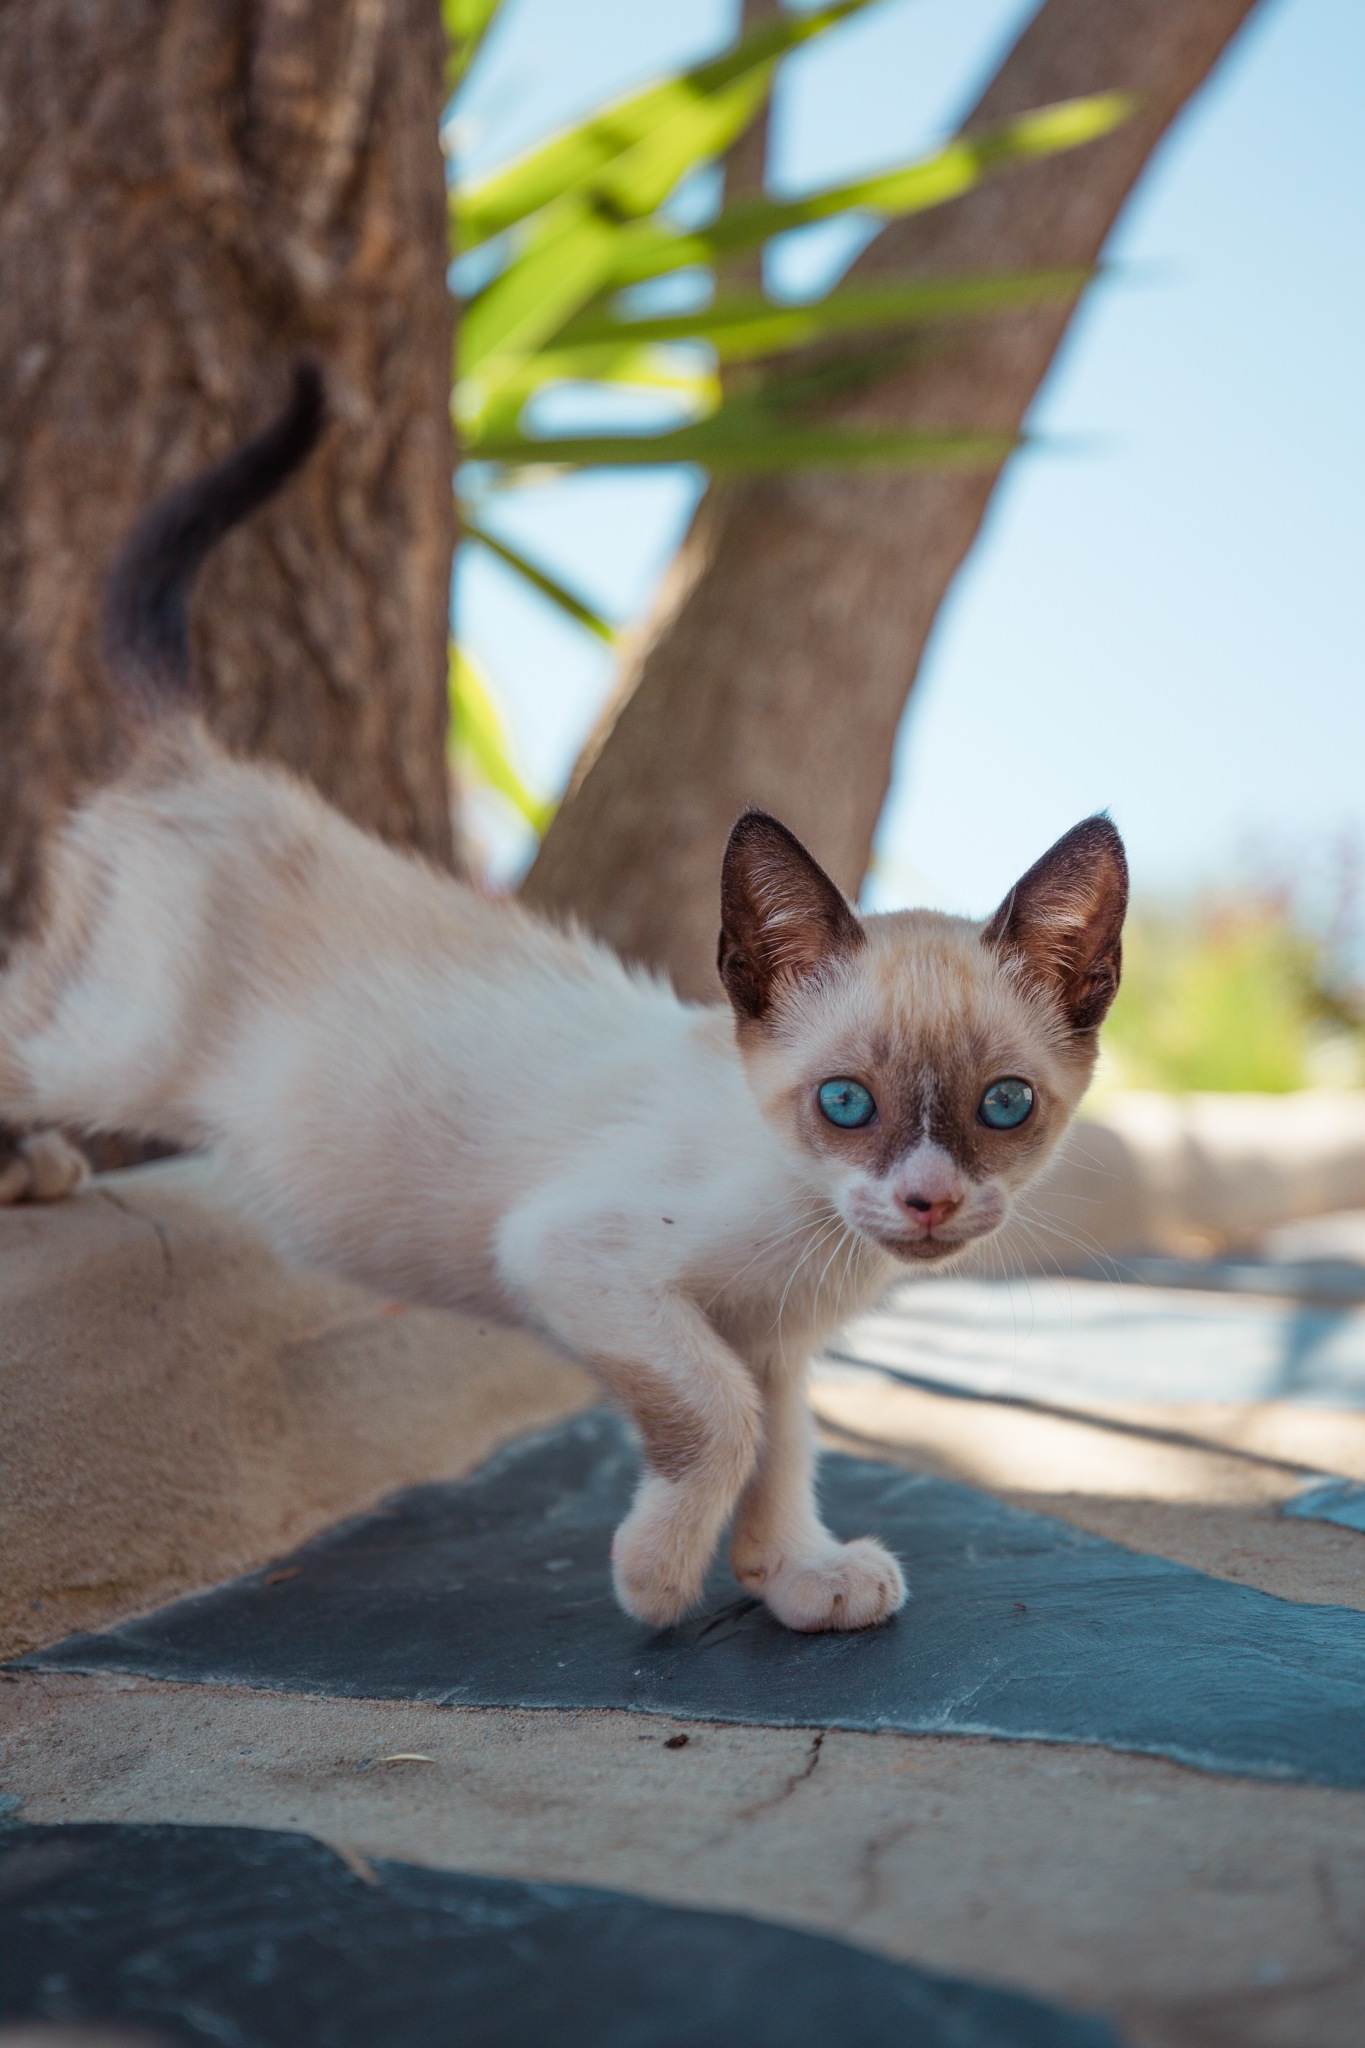 CAT by Justandreas